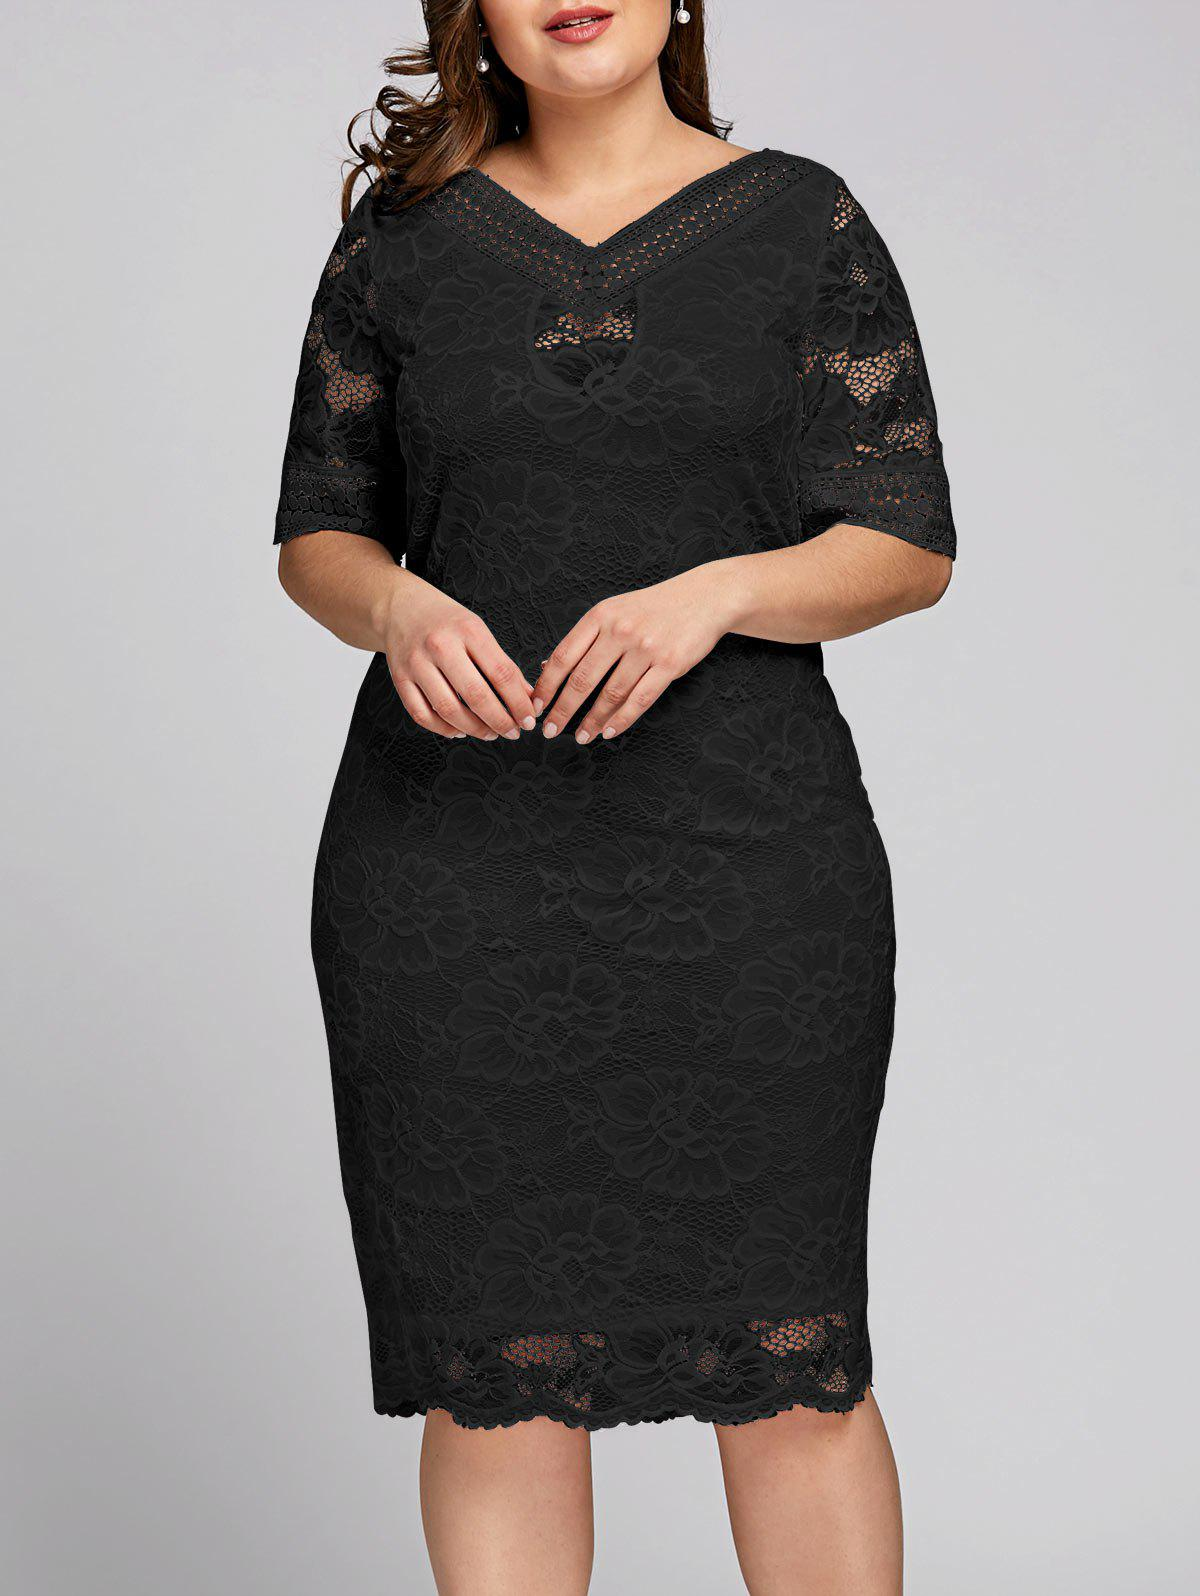 Plus Size Half Sleeve V Neck Lace Dress army green v neck half sleeve dress